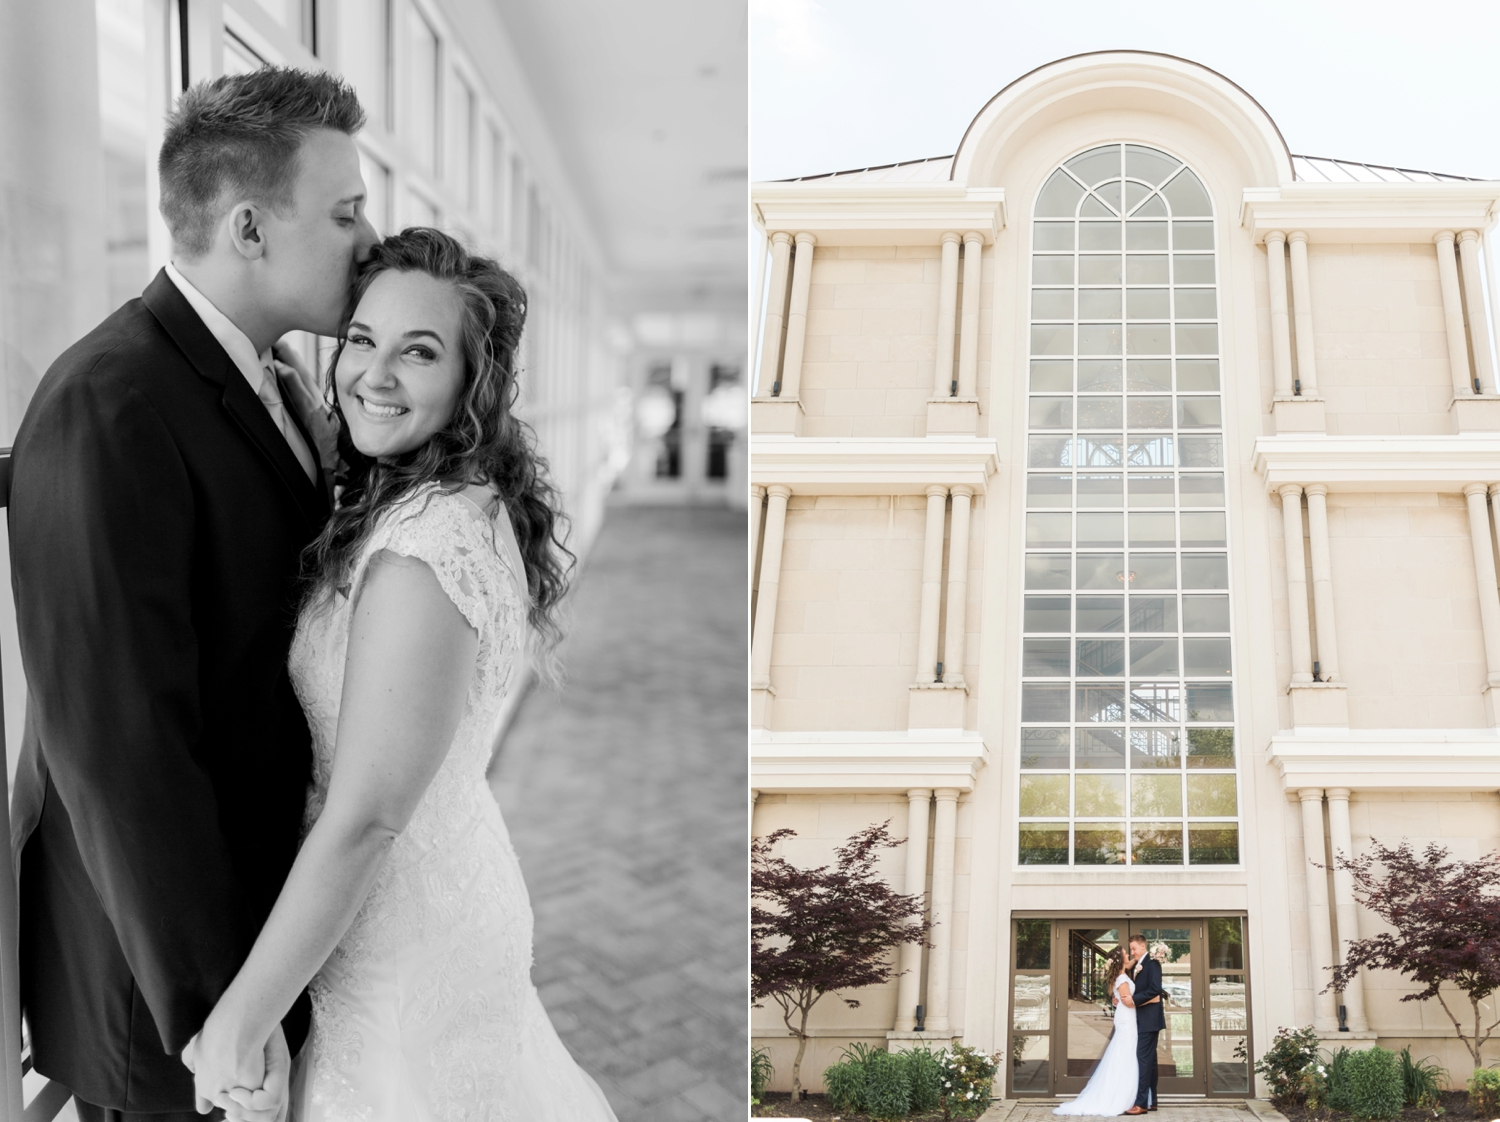 Community_Life_Center_Indianapolis_Indiana_Wedding_Photographer_Chloe_Luka_Photography_6884.jpg